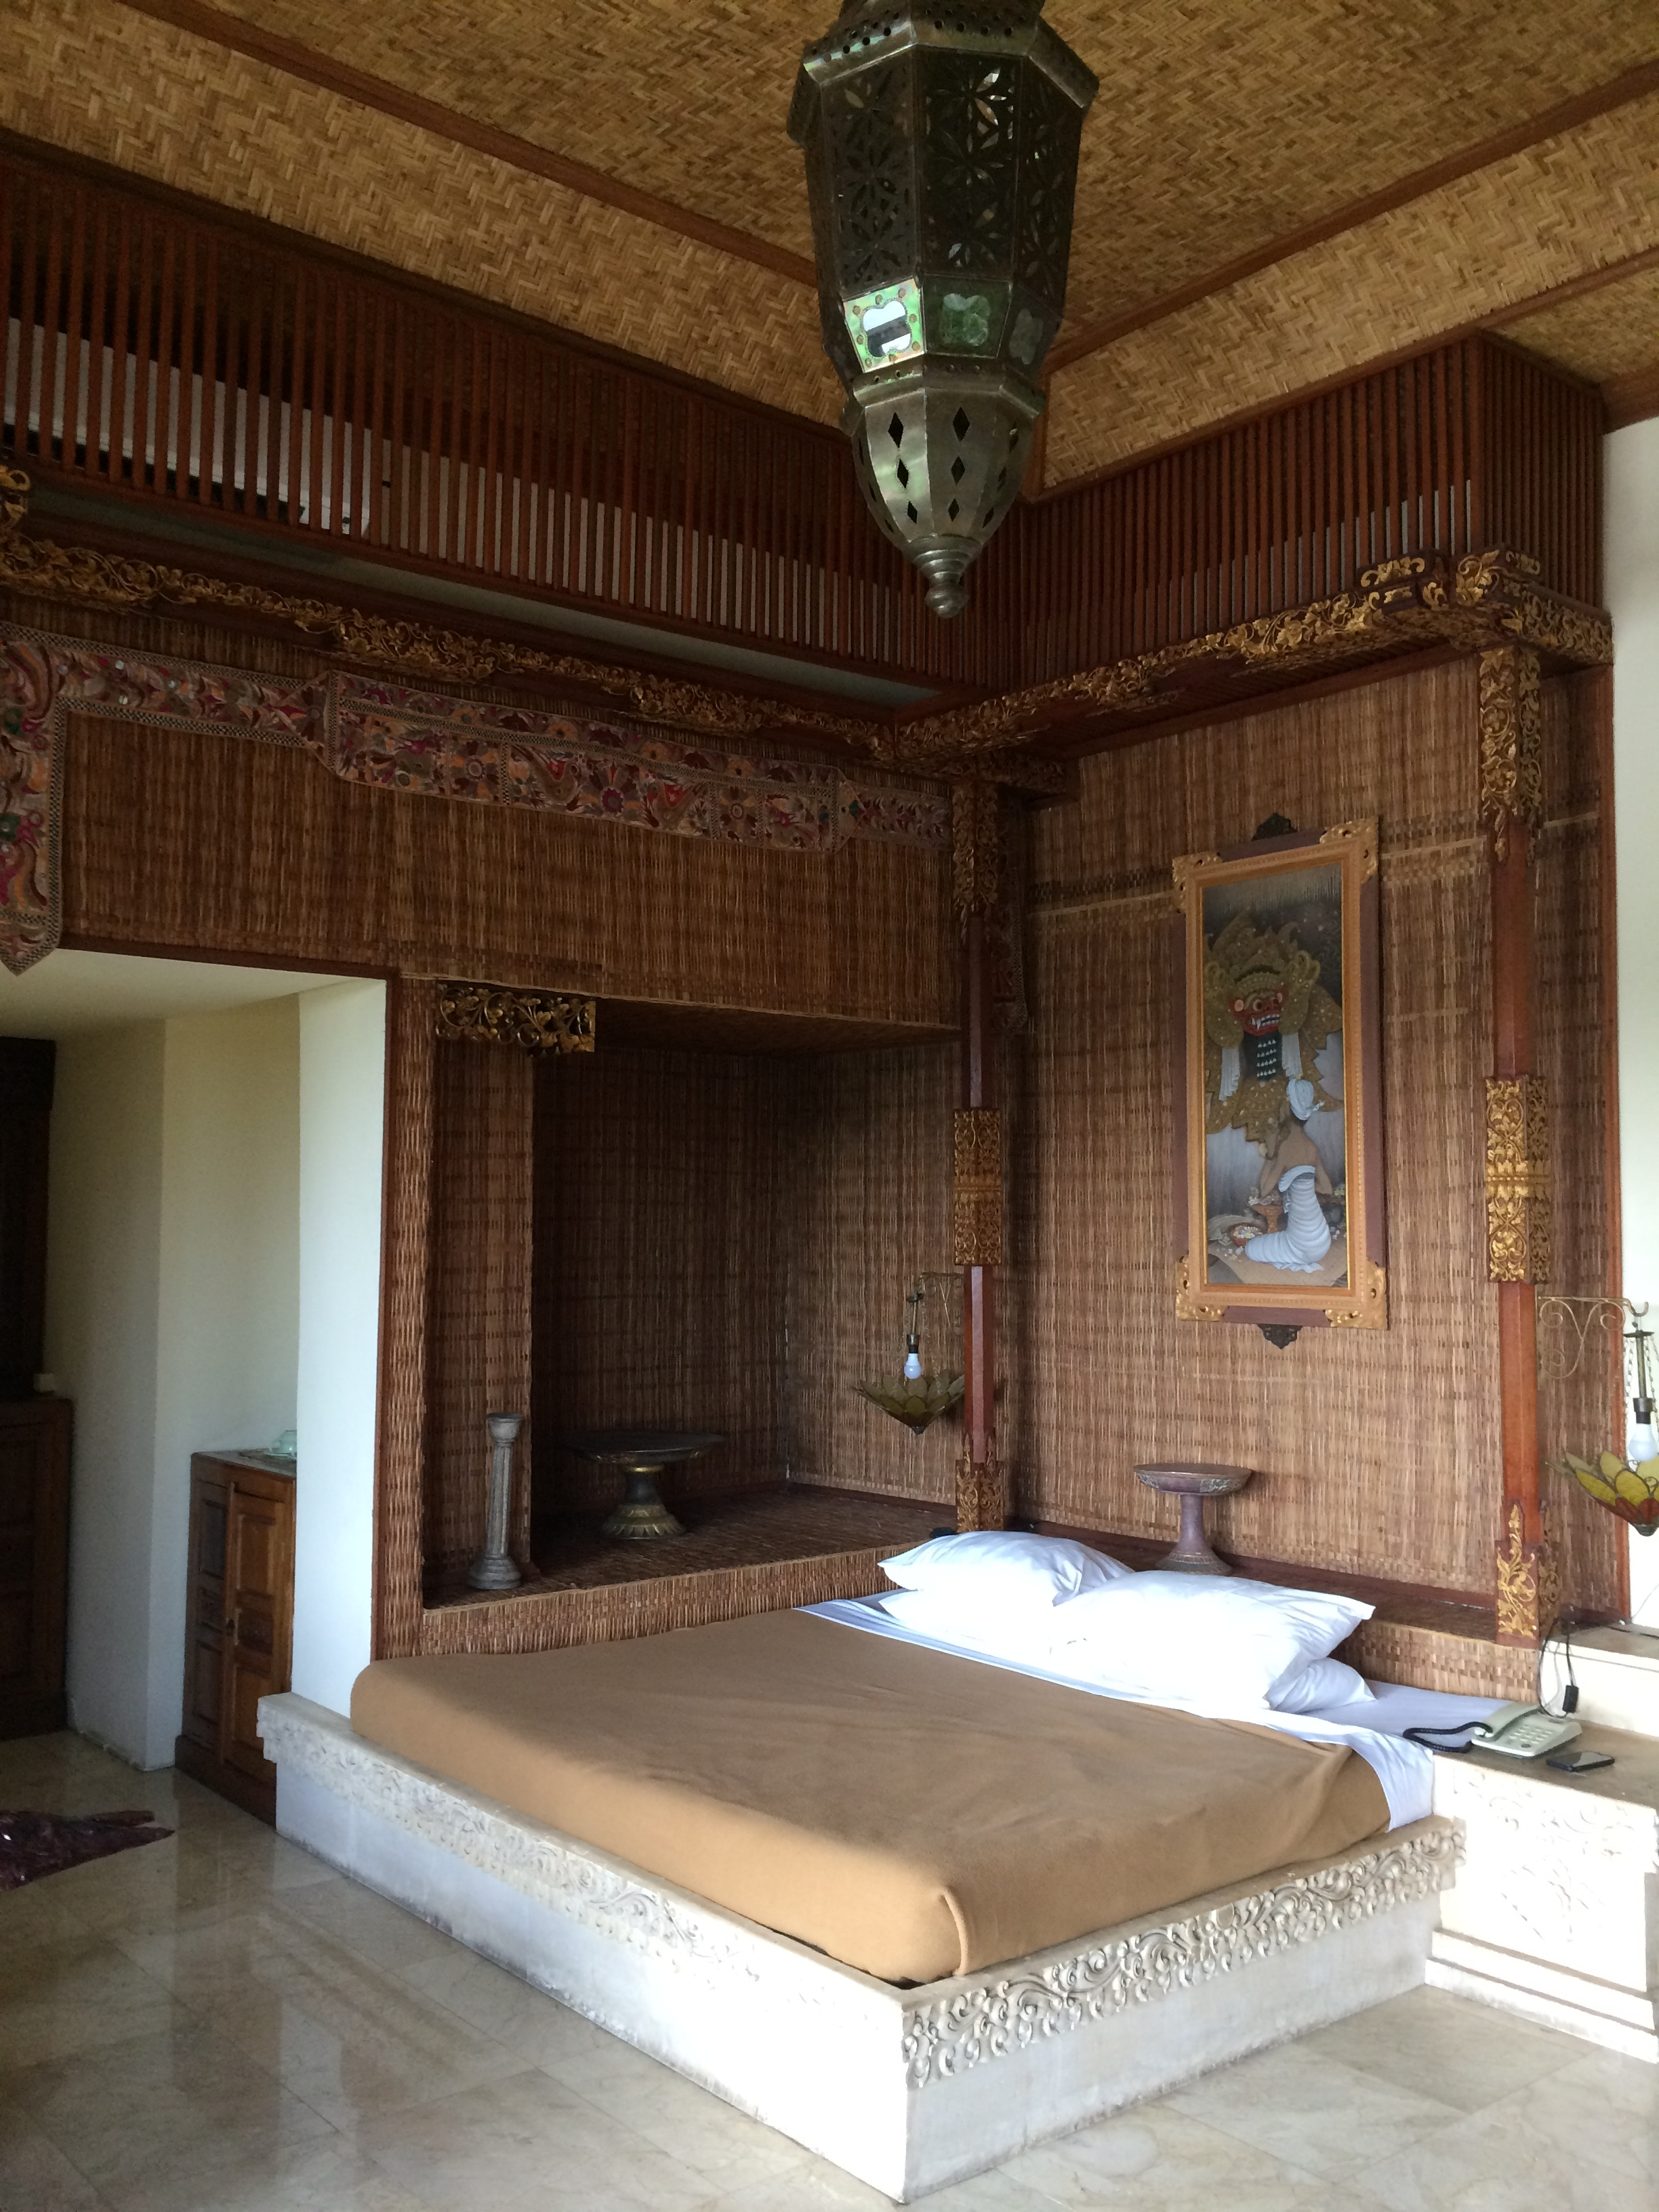 Our palace in Ubud.